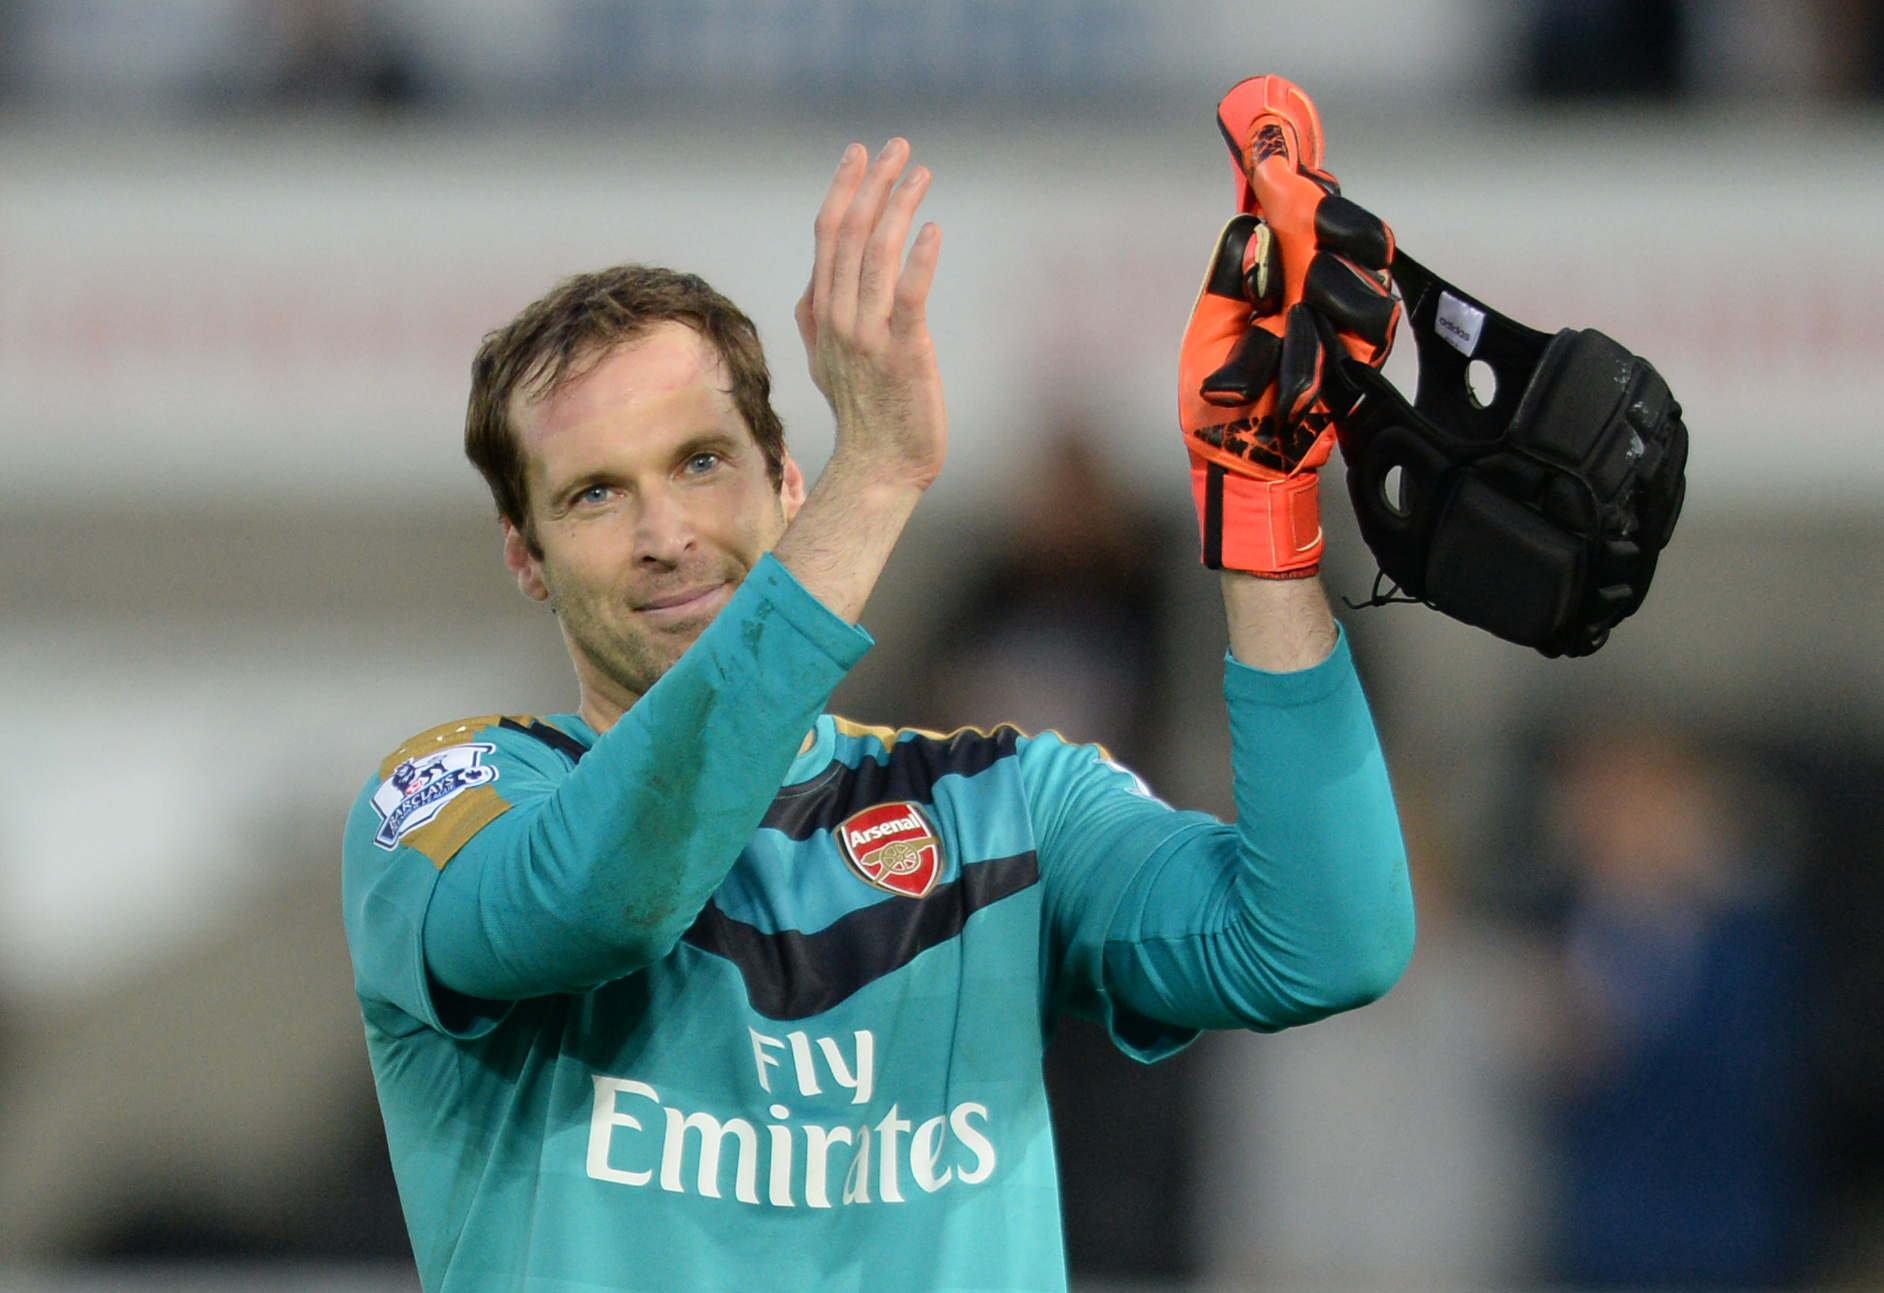 Arsenal's Petr Cech applauds fans after the Swansea City v Arsenal  game. Photo: Reuters